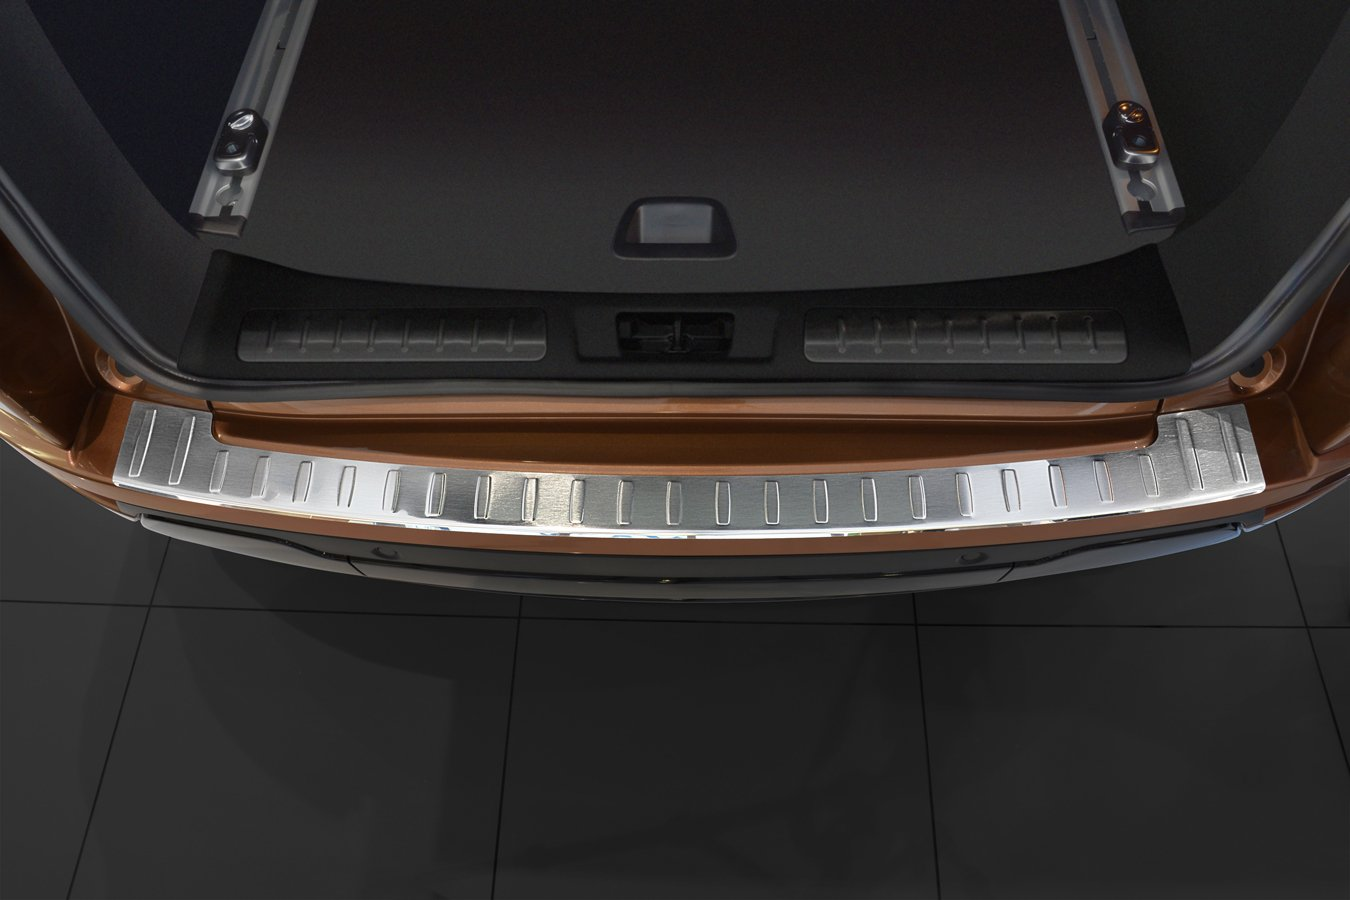 2011 - 2017 Land Rover Range Rover Evoque - Stainless Steel Rear Bumper Protector